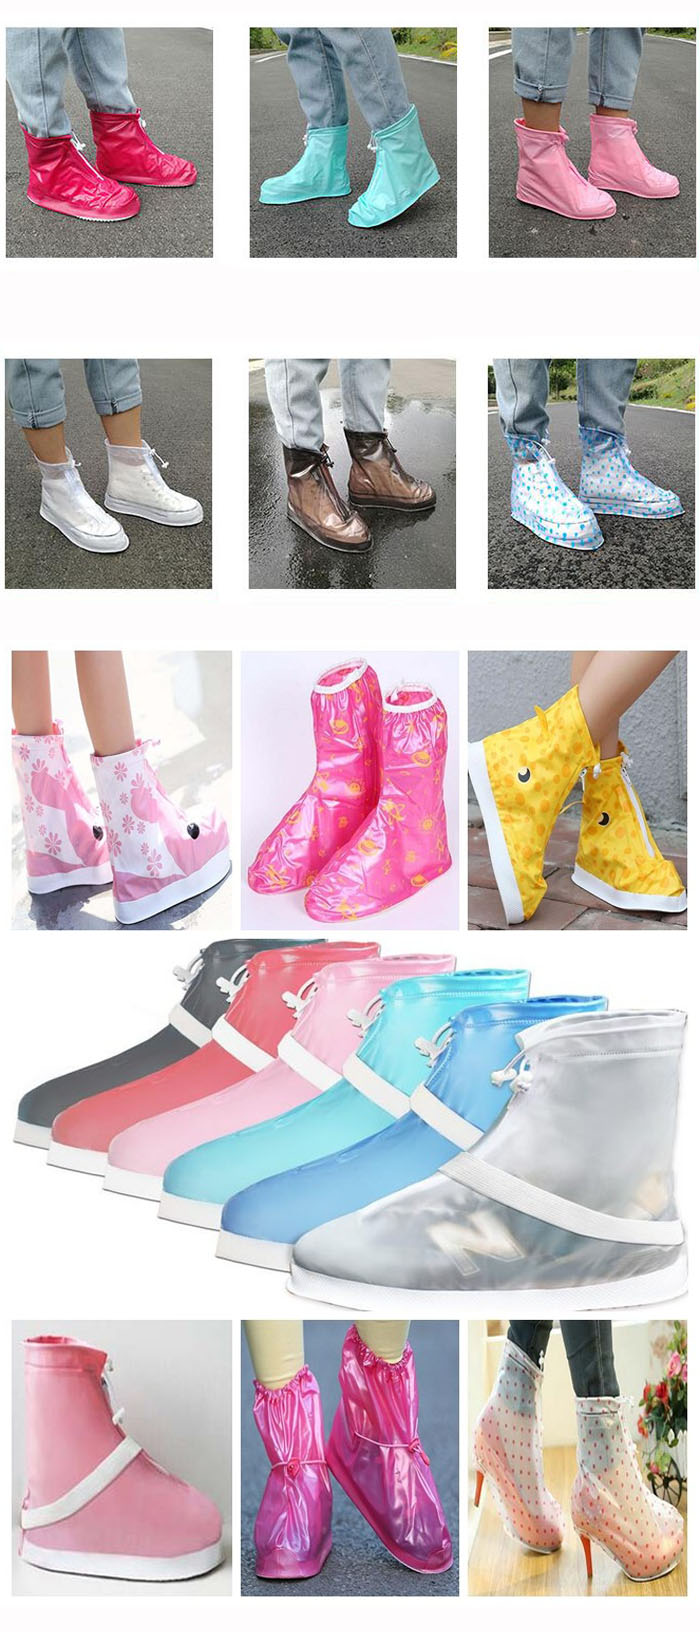 shoes covers raincoat for shoes